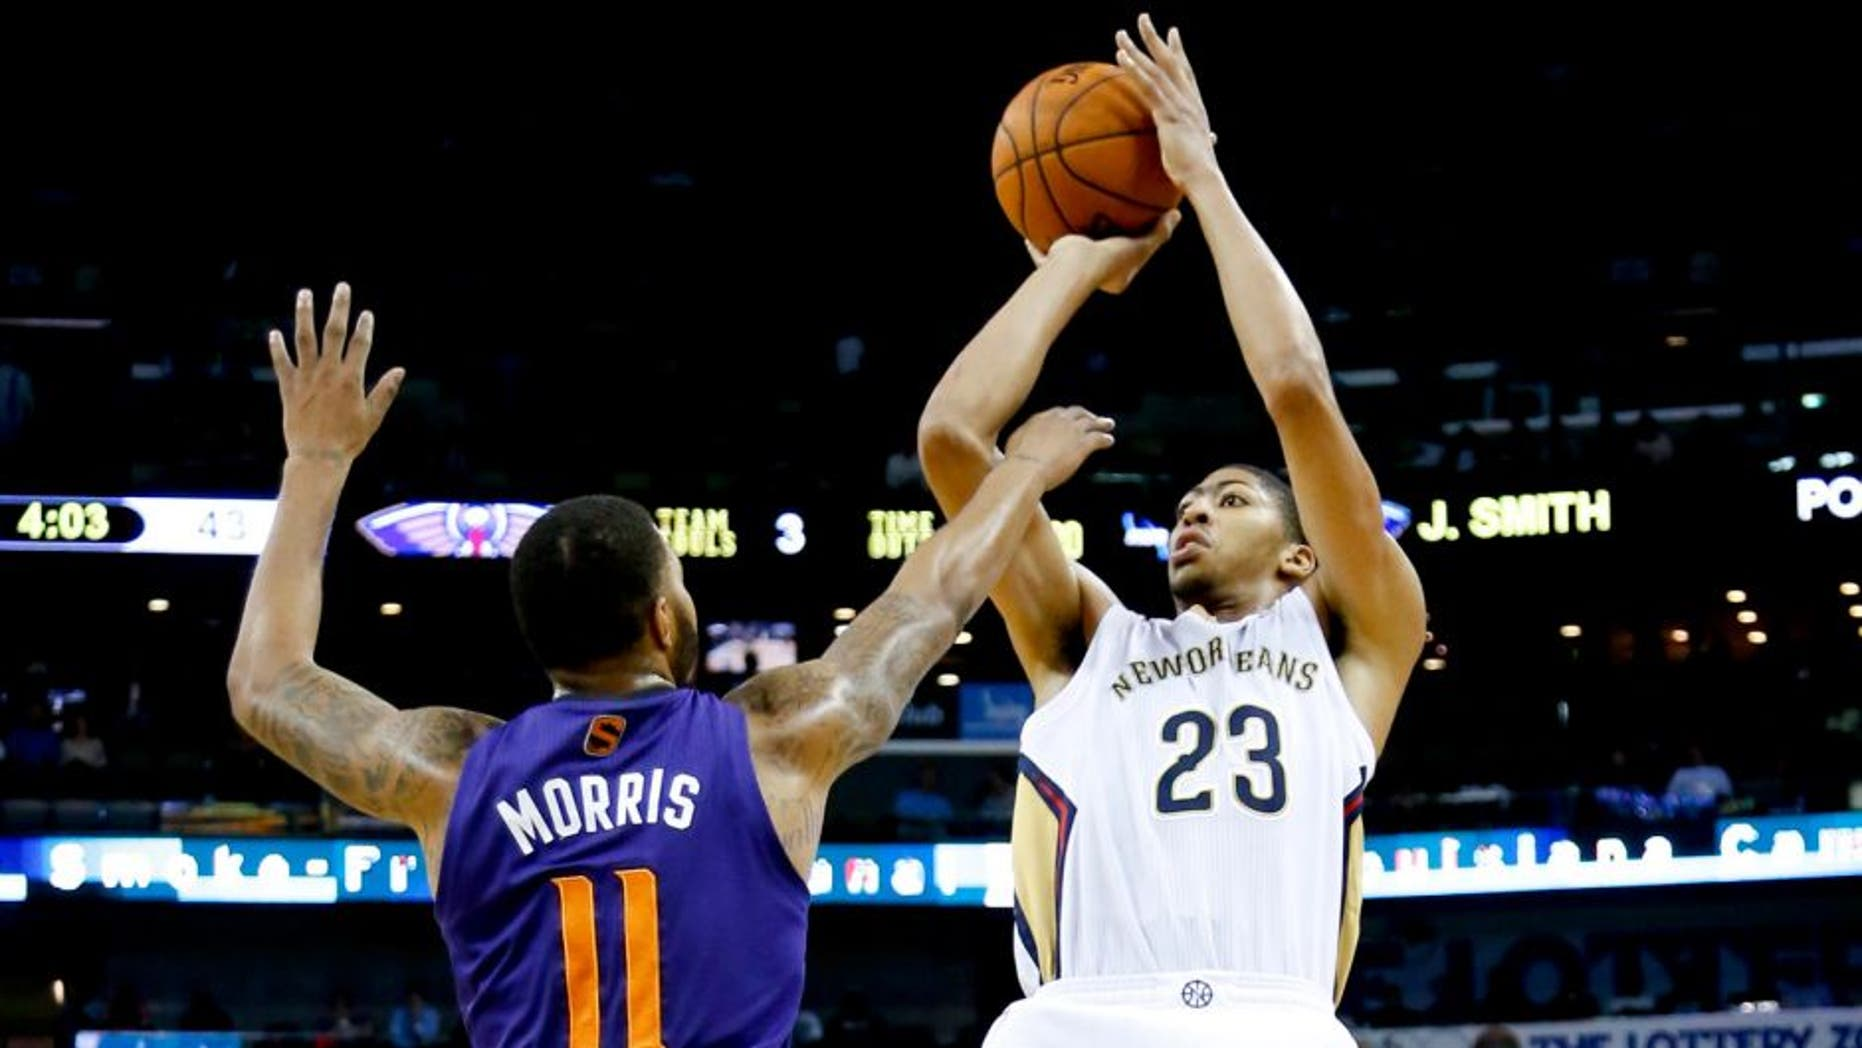 Nba 2k16 Releases First Screenshot Of Anthony Davis Photo